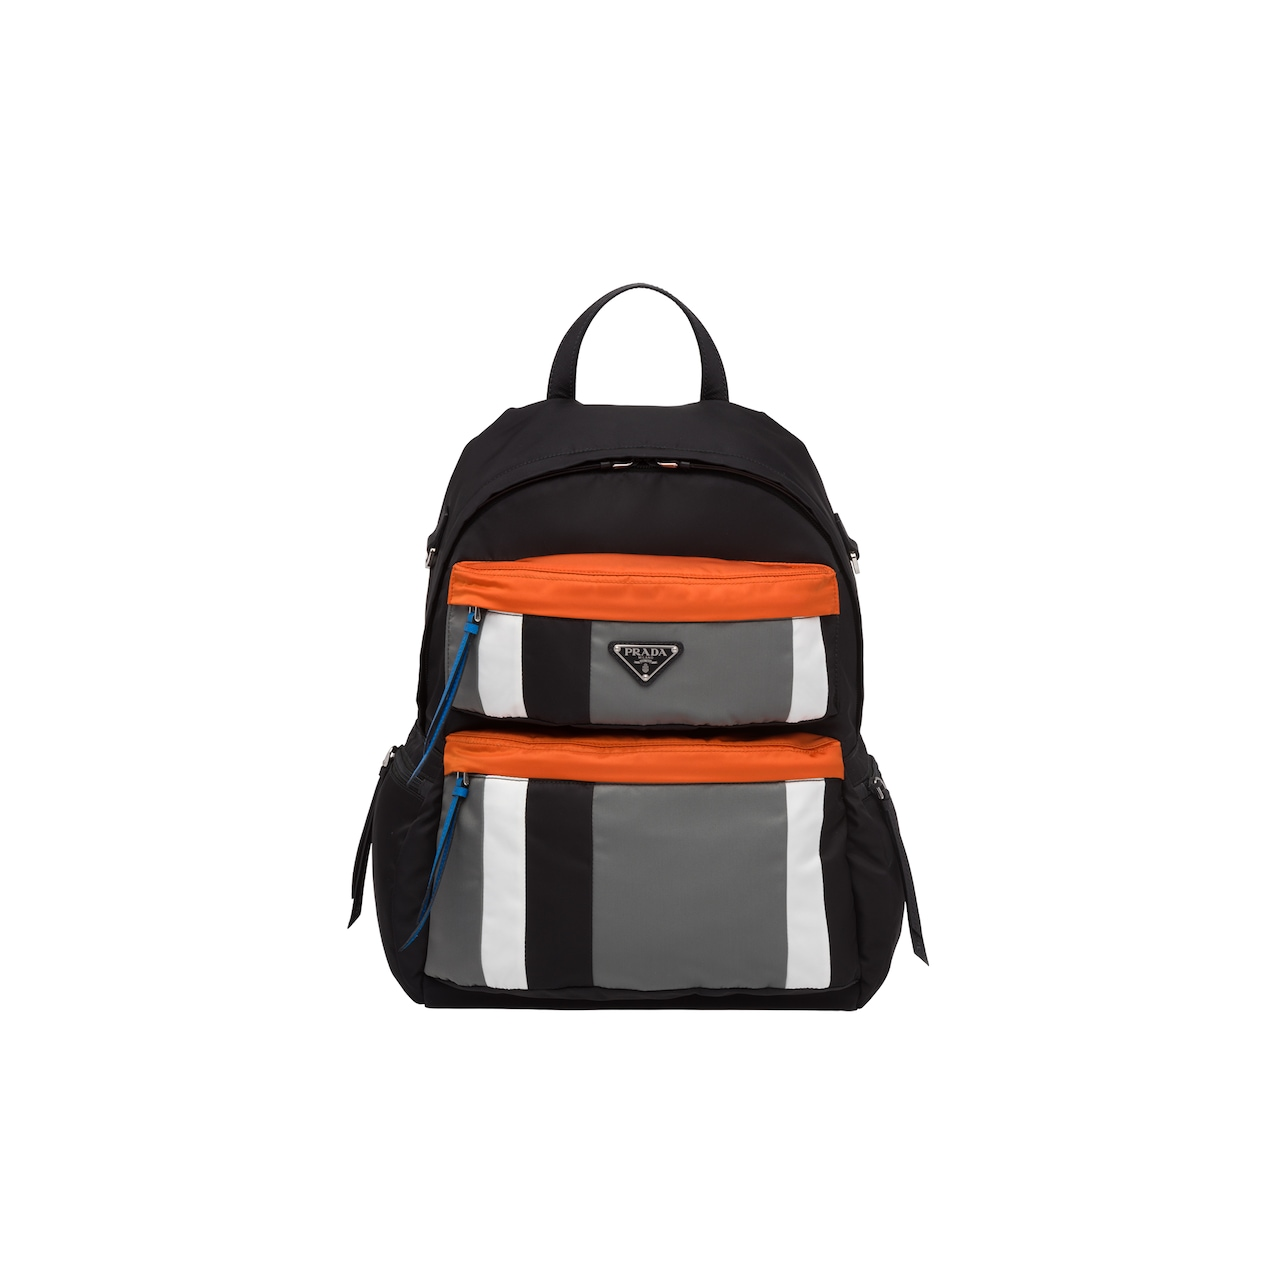 Printed technical fabric backpack